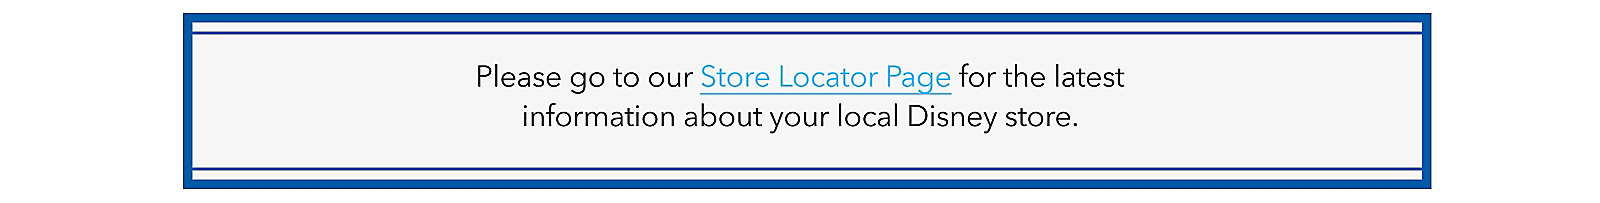 Please go to our Store Locator Page for the latest information about your local Disney store.